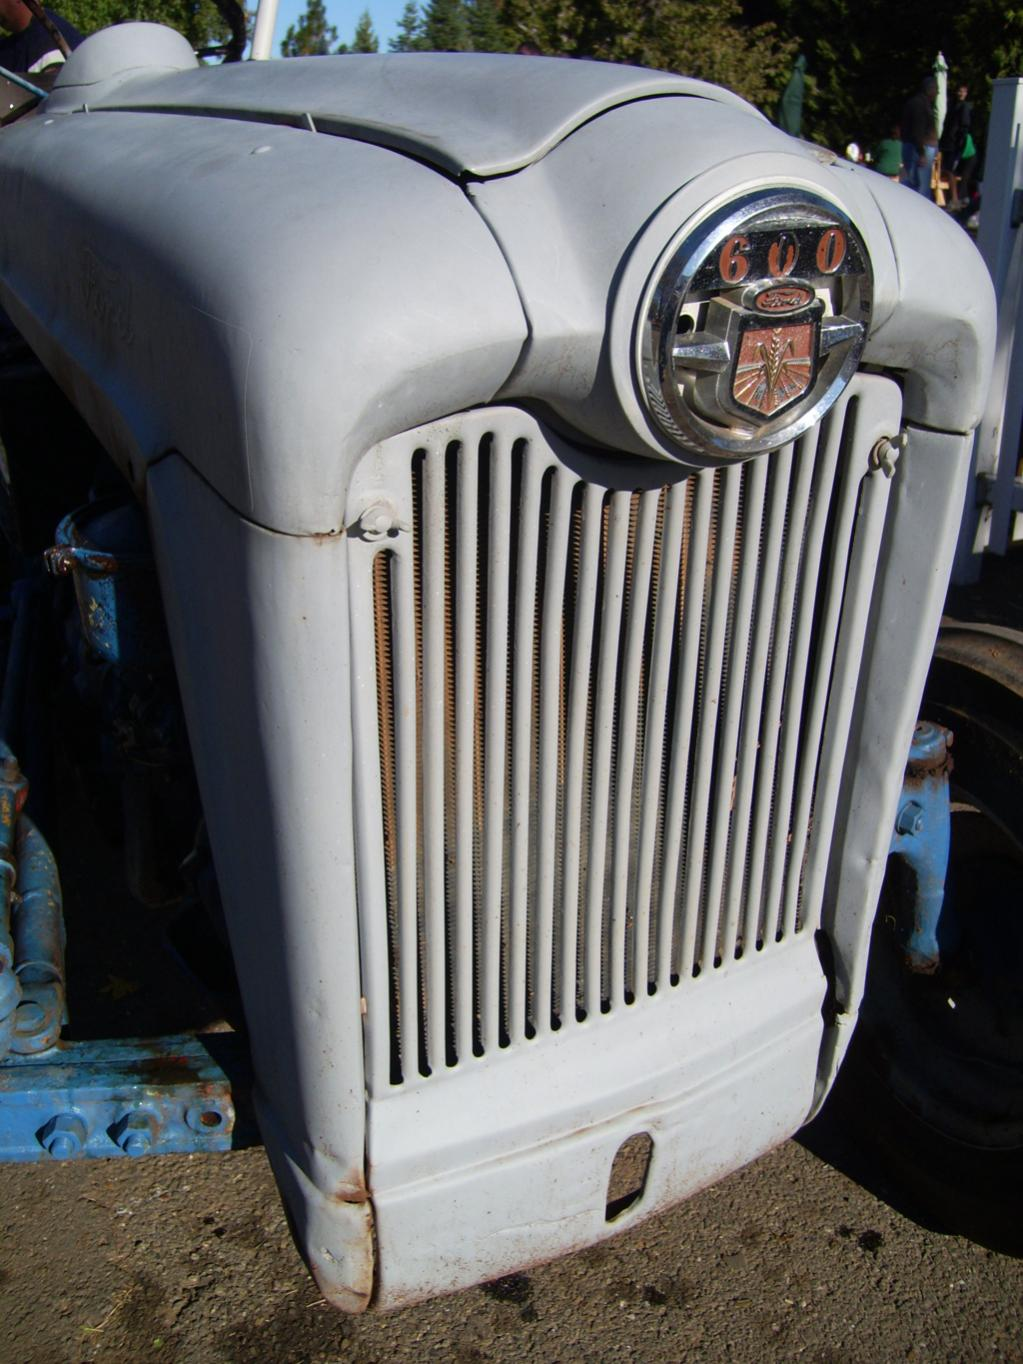 FORD 600 Tractor Grille @ High Hill Ranch.jpg